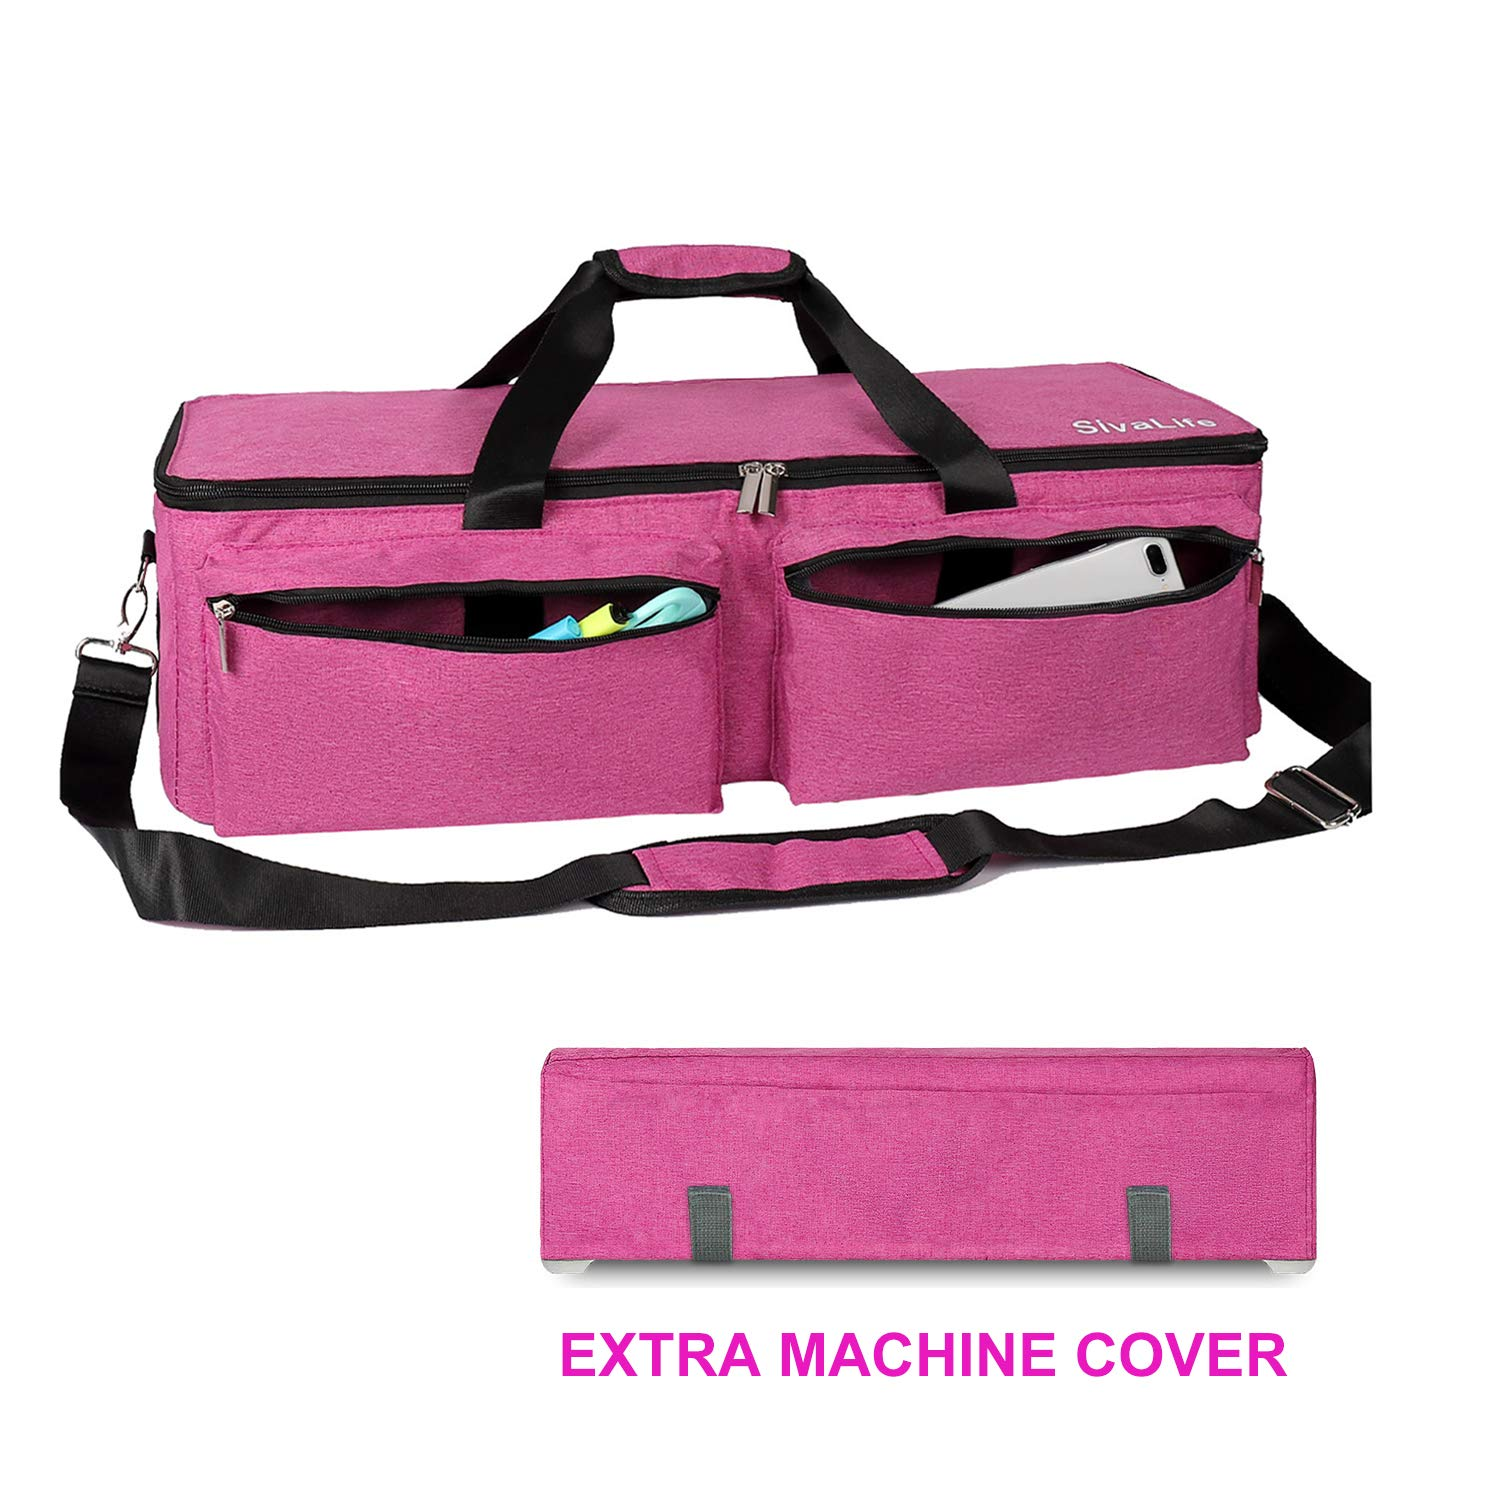 SivaLife Carrying Bag Compatible with Cricut Explore Air and Maker, Durable Tote Bag Compatible with Cricut Explore Air, Silhouette Cameo 3 and Supplies (Pink)